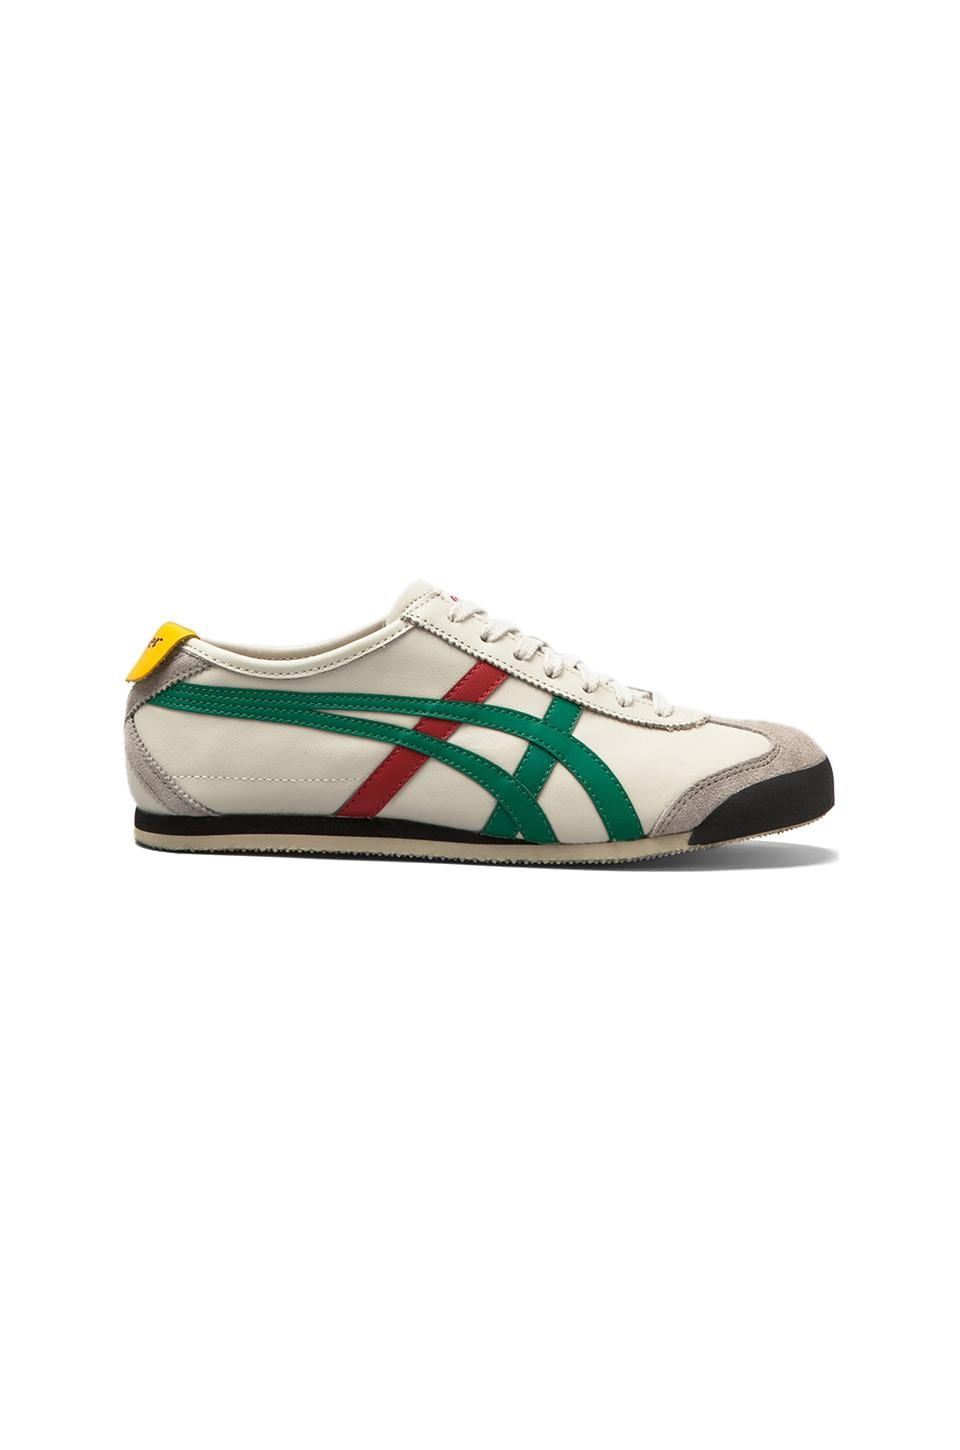 Onitsuka Tiger Mexico 66 in Birch/Green